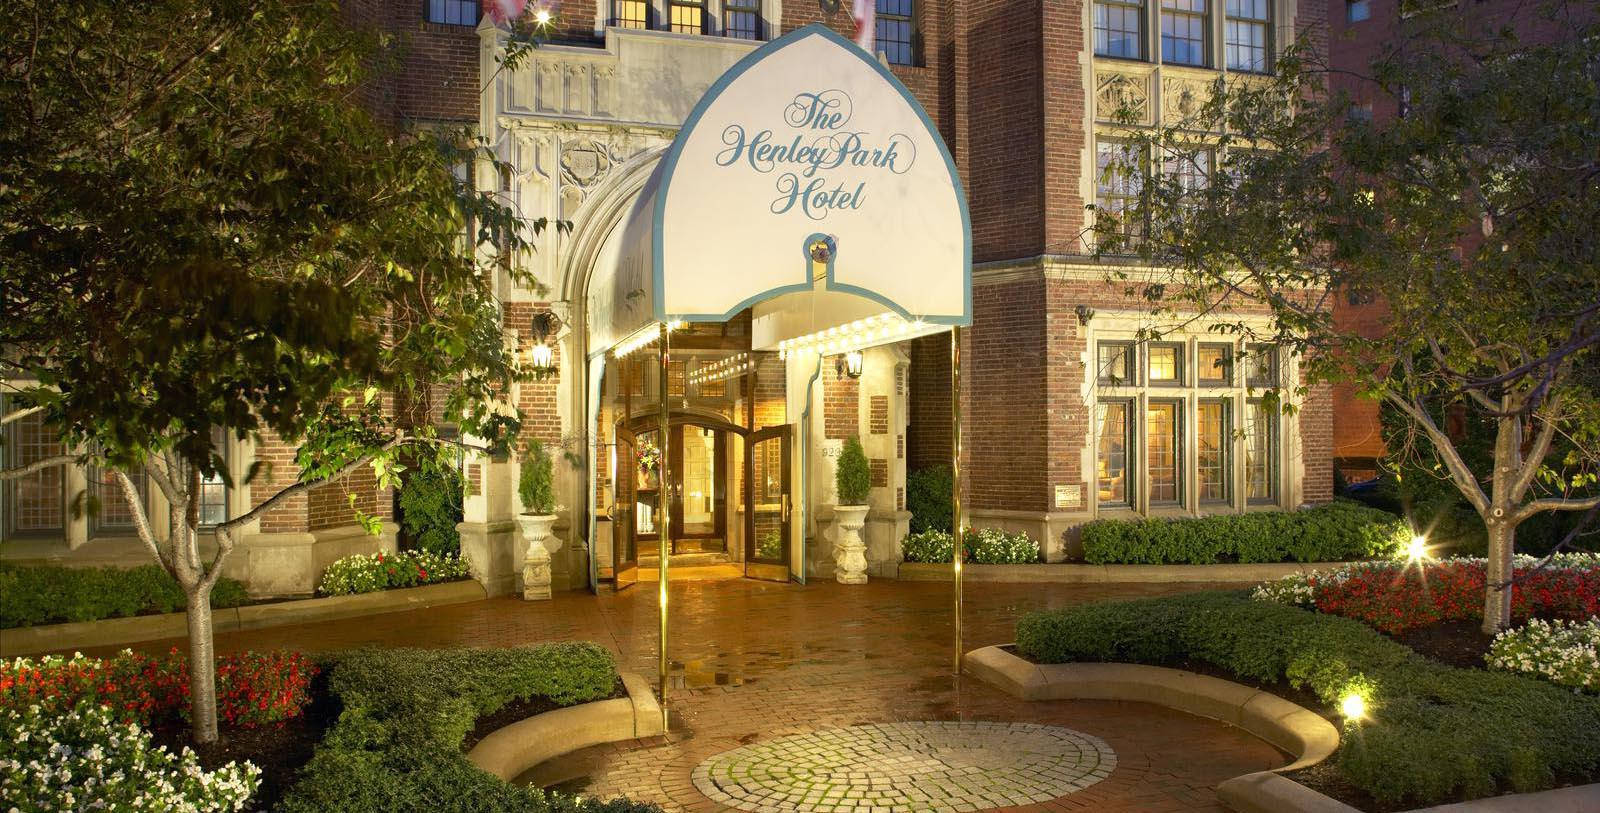 Image of Entrance The Henley Park Hotel, 1948, Member of Historic Hotels of America, in Washington, DC, Special Offers, Discounted Rates, Families, Romantic Escape, Honeymoons, Anniversaries, Reunions